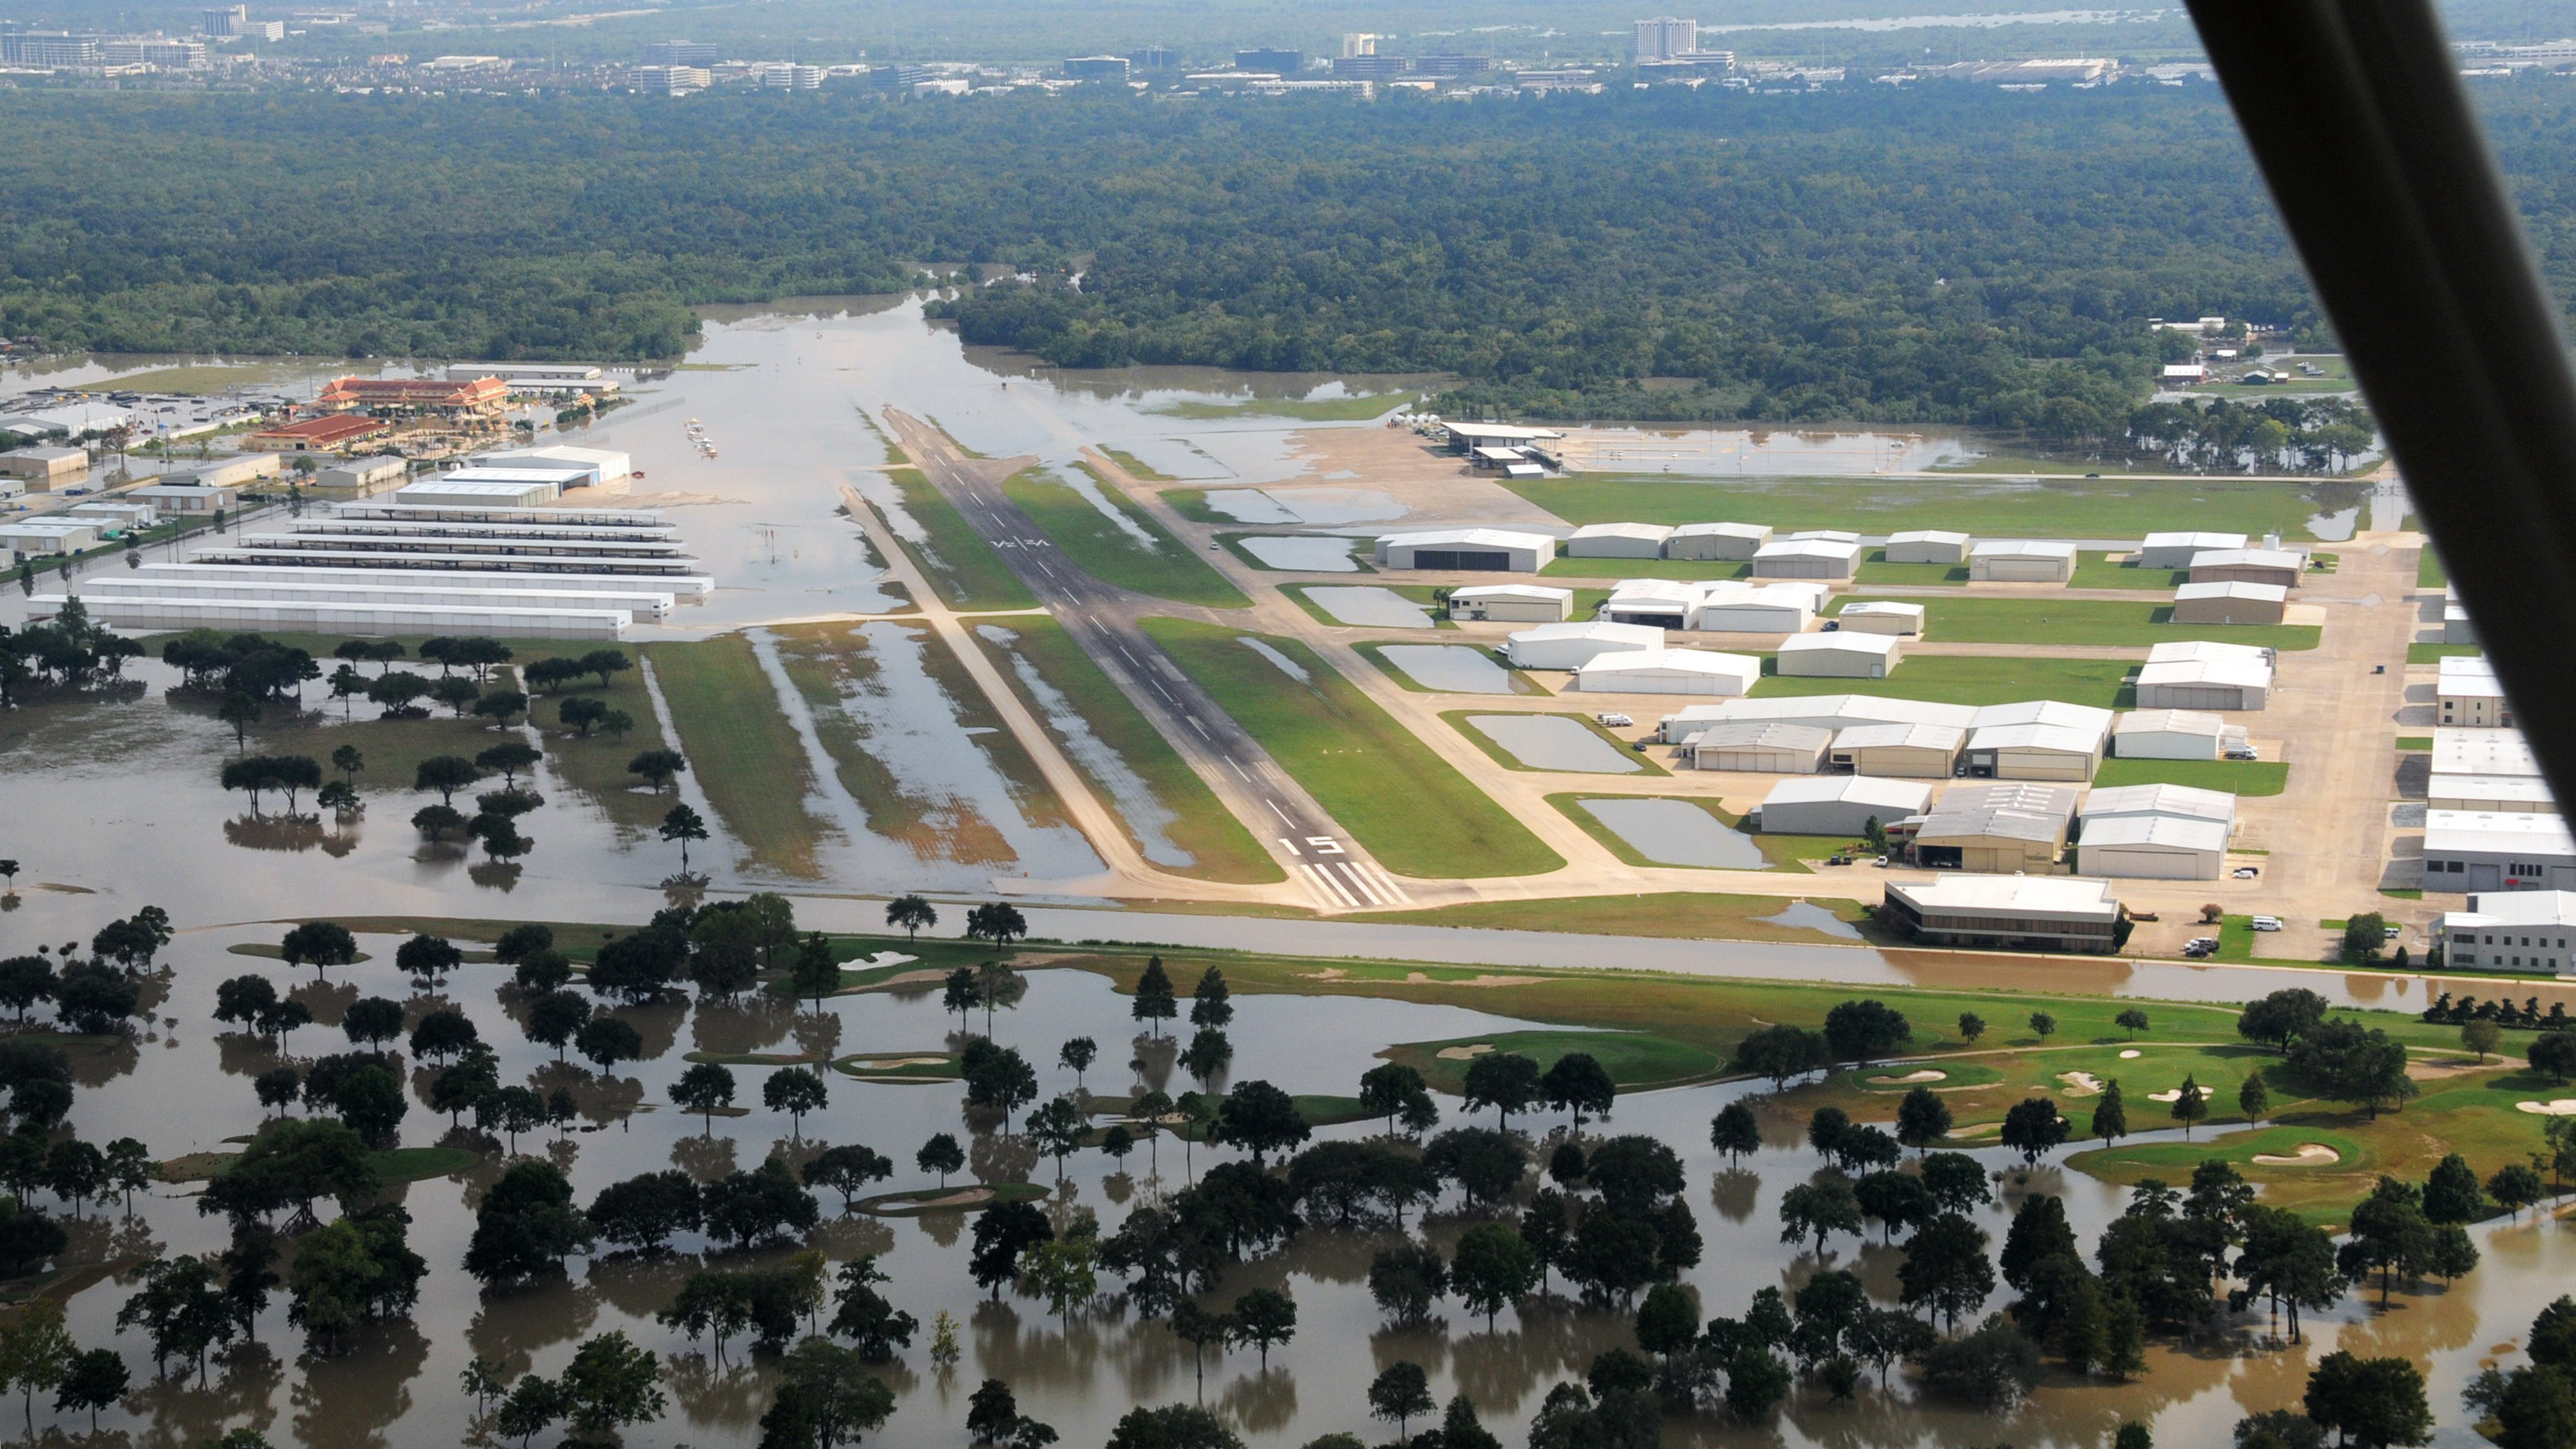 West Houston Airport after Hurricane Harvey. Photo courtesy of Jeffrey Weiss.